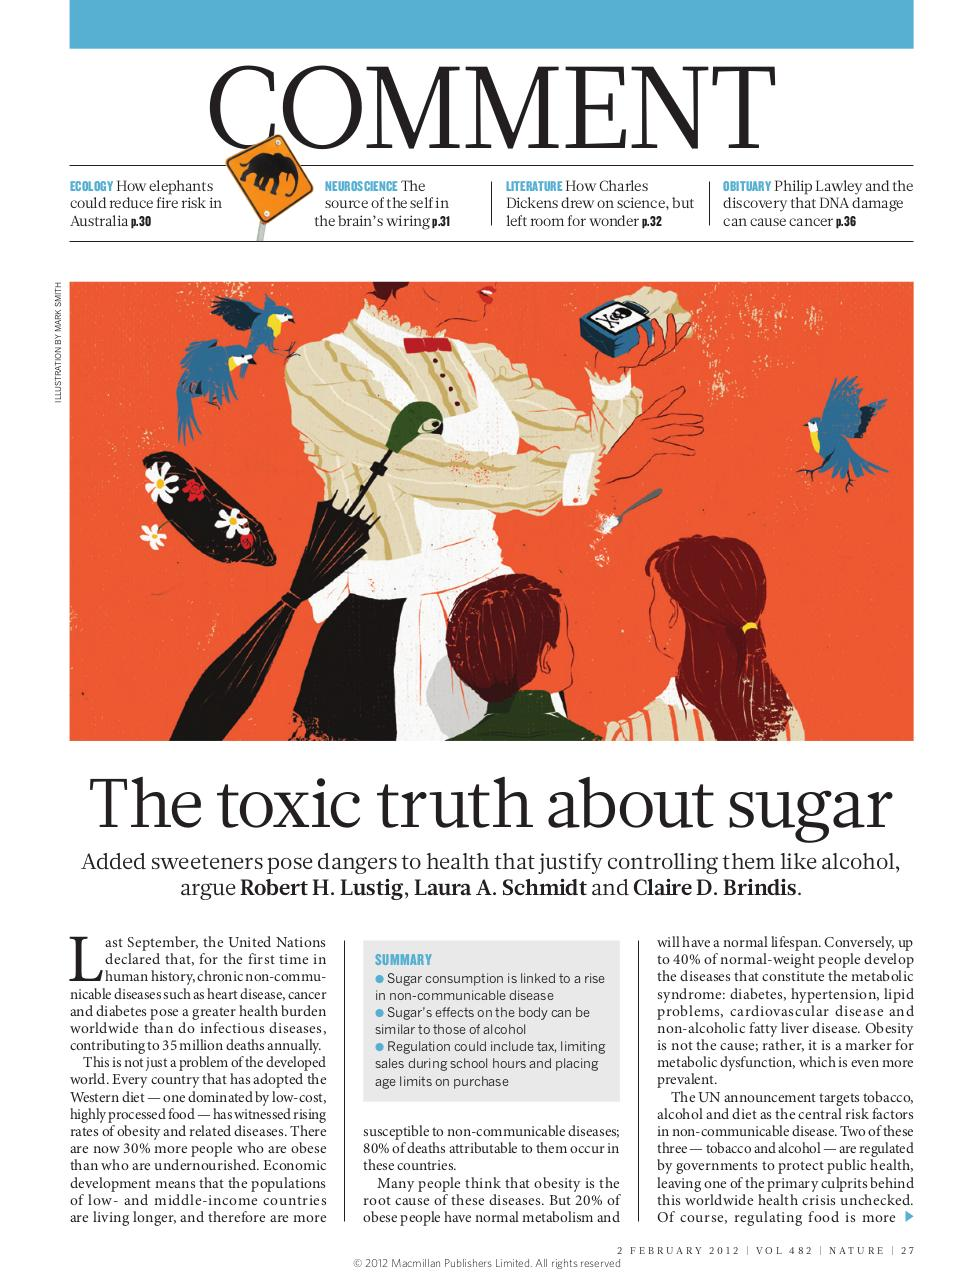 Lustig 2012 The toxic truth about sugar.pdf - page 1/3